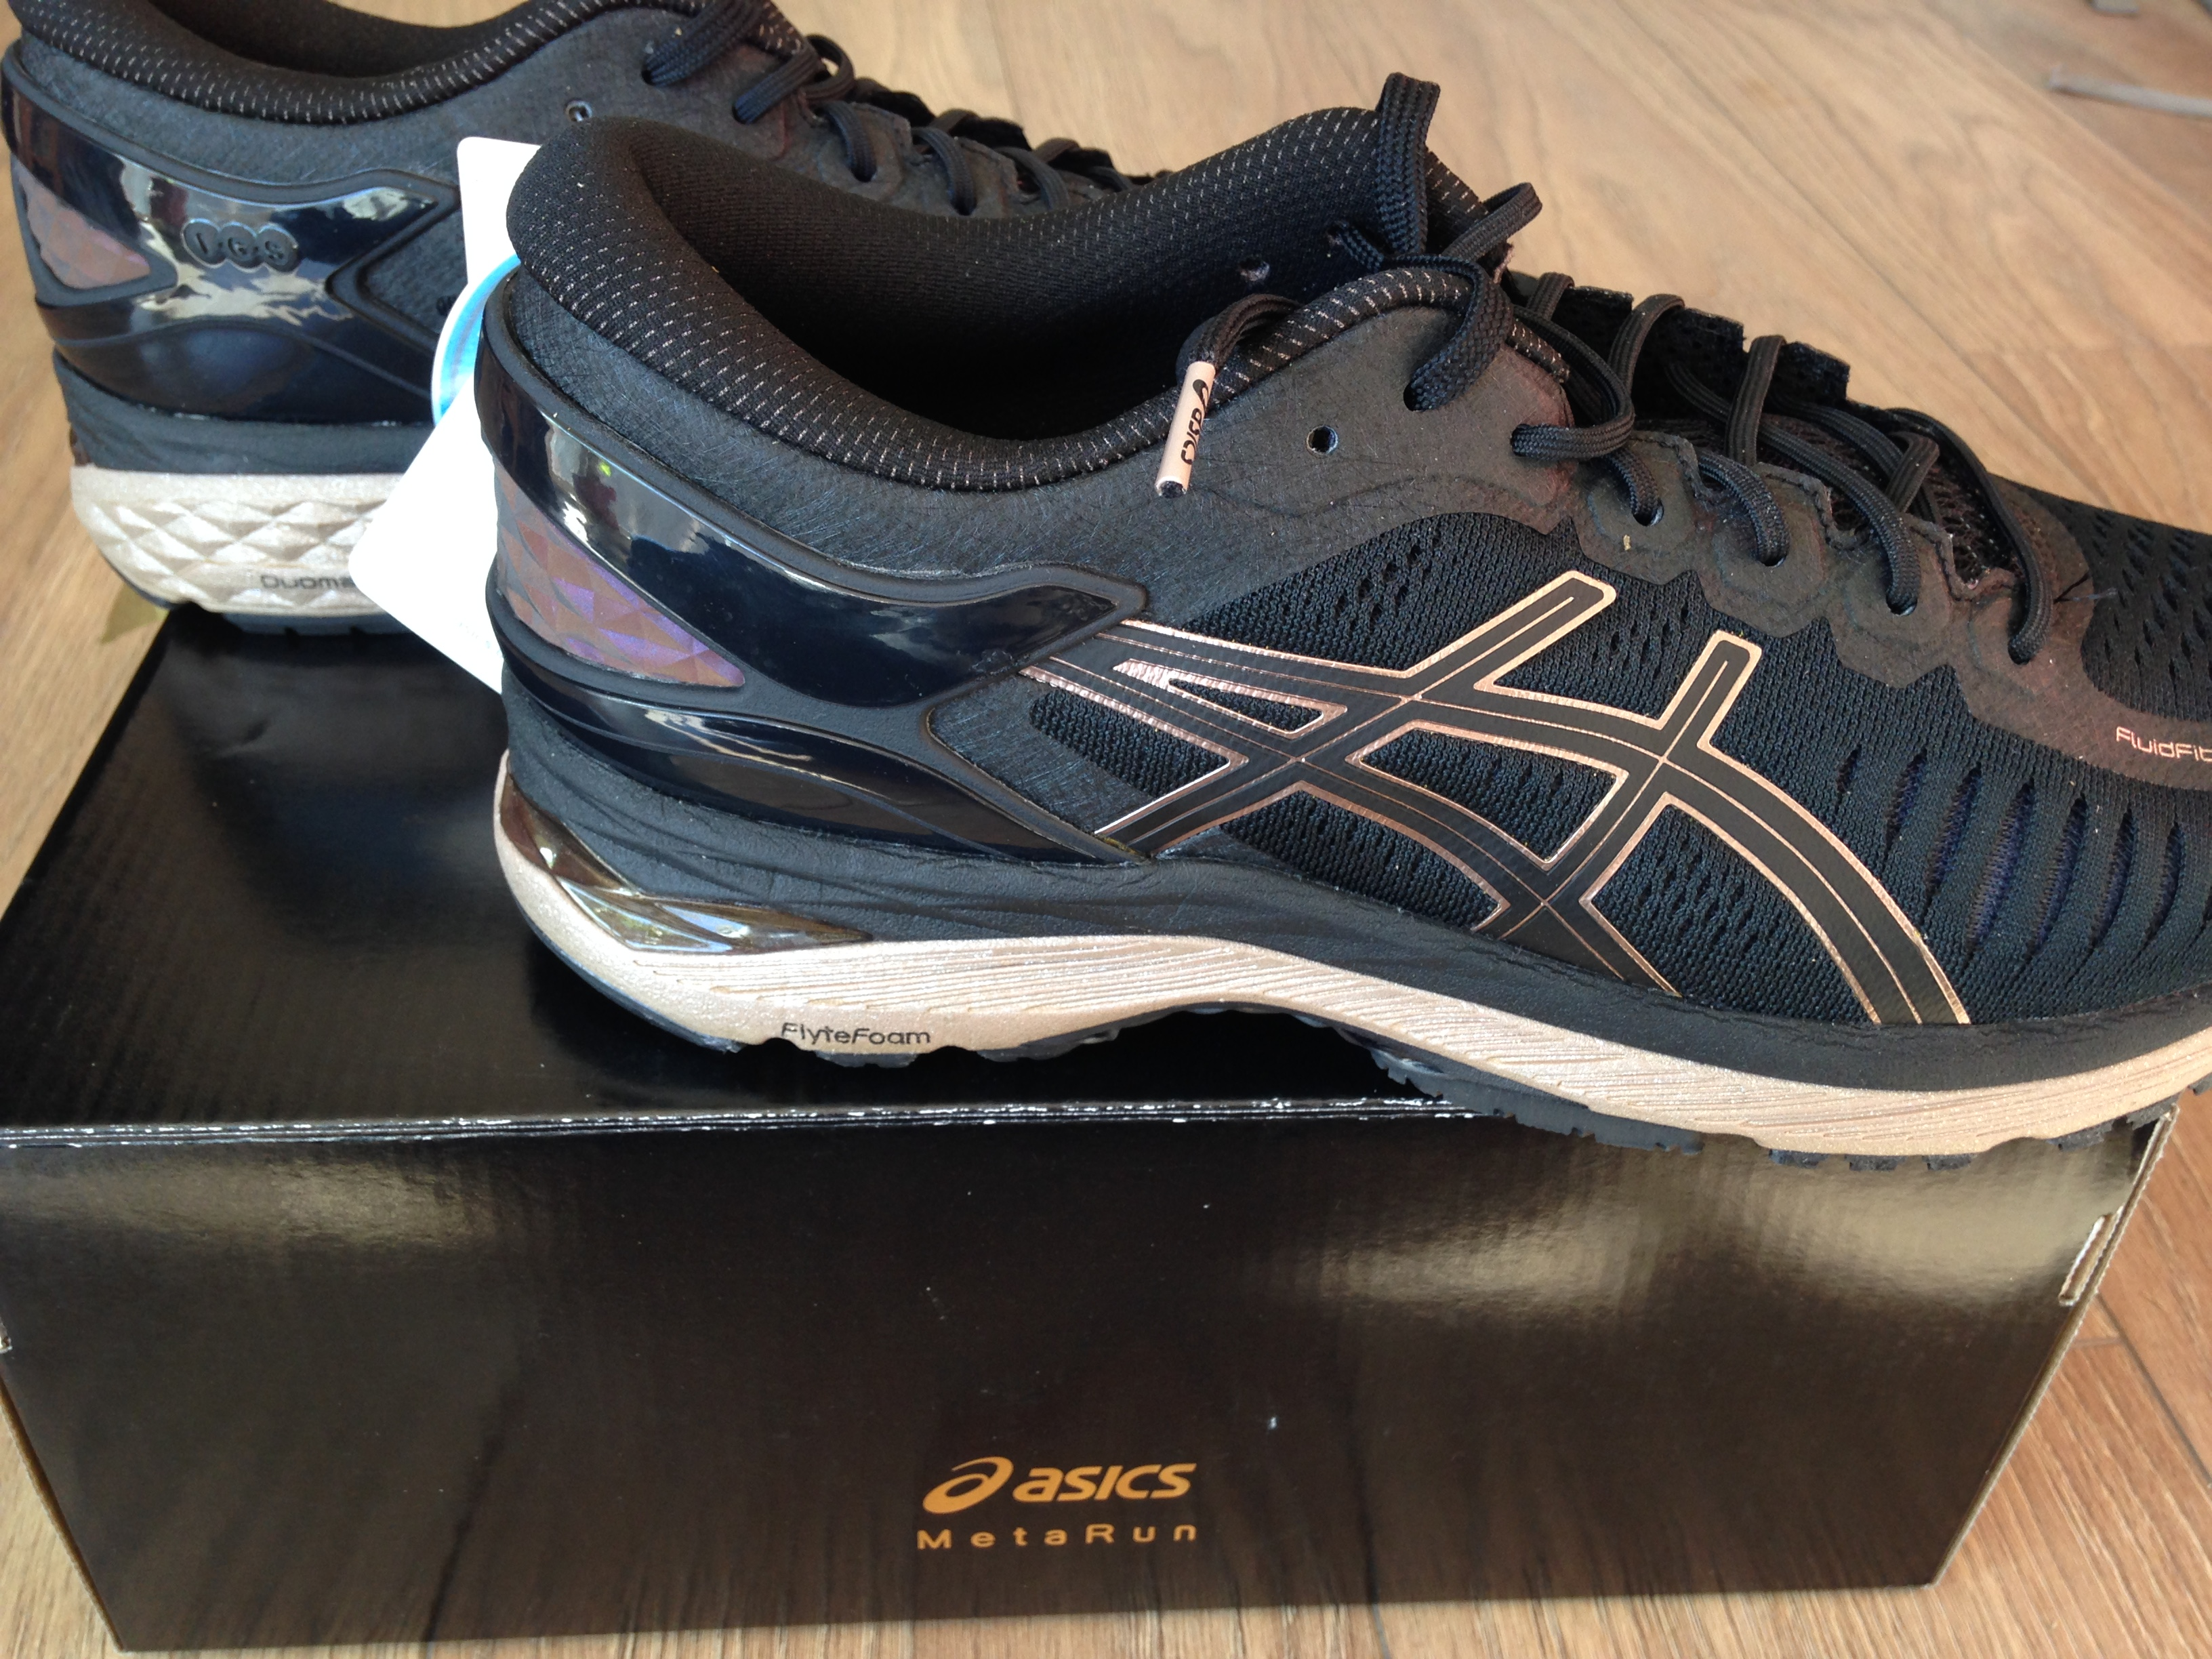 basket asics metarun